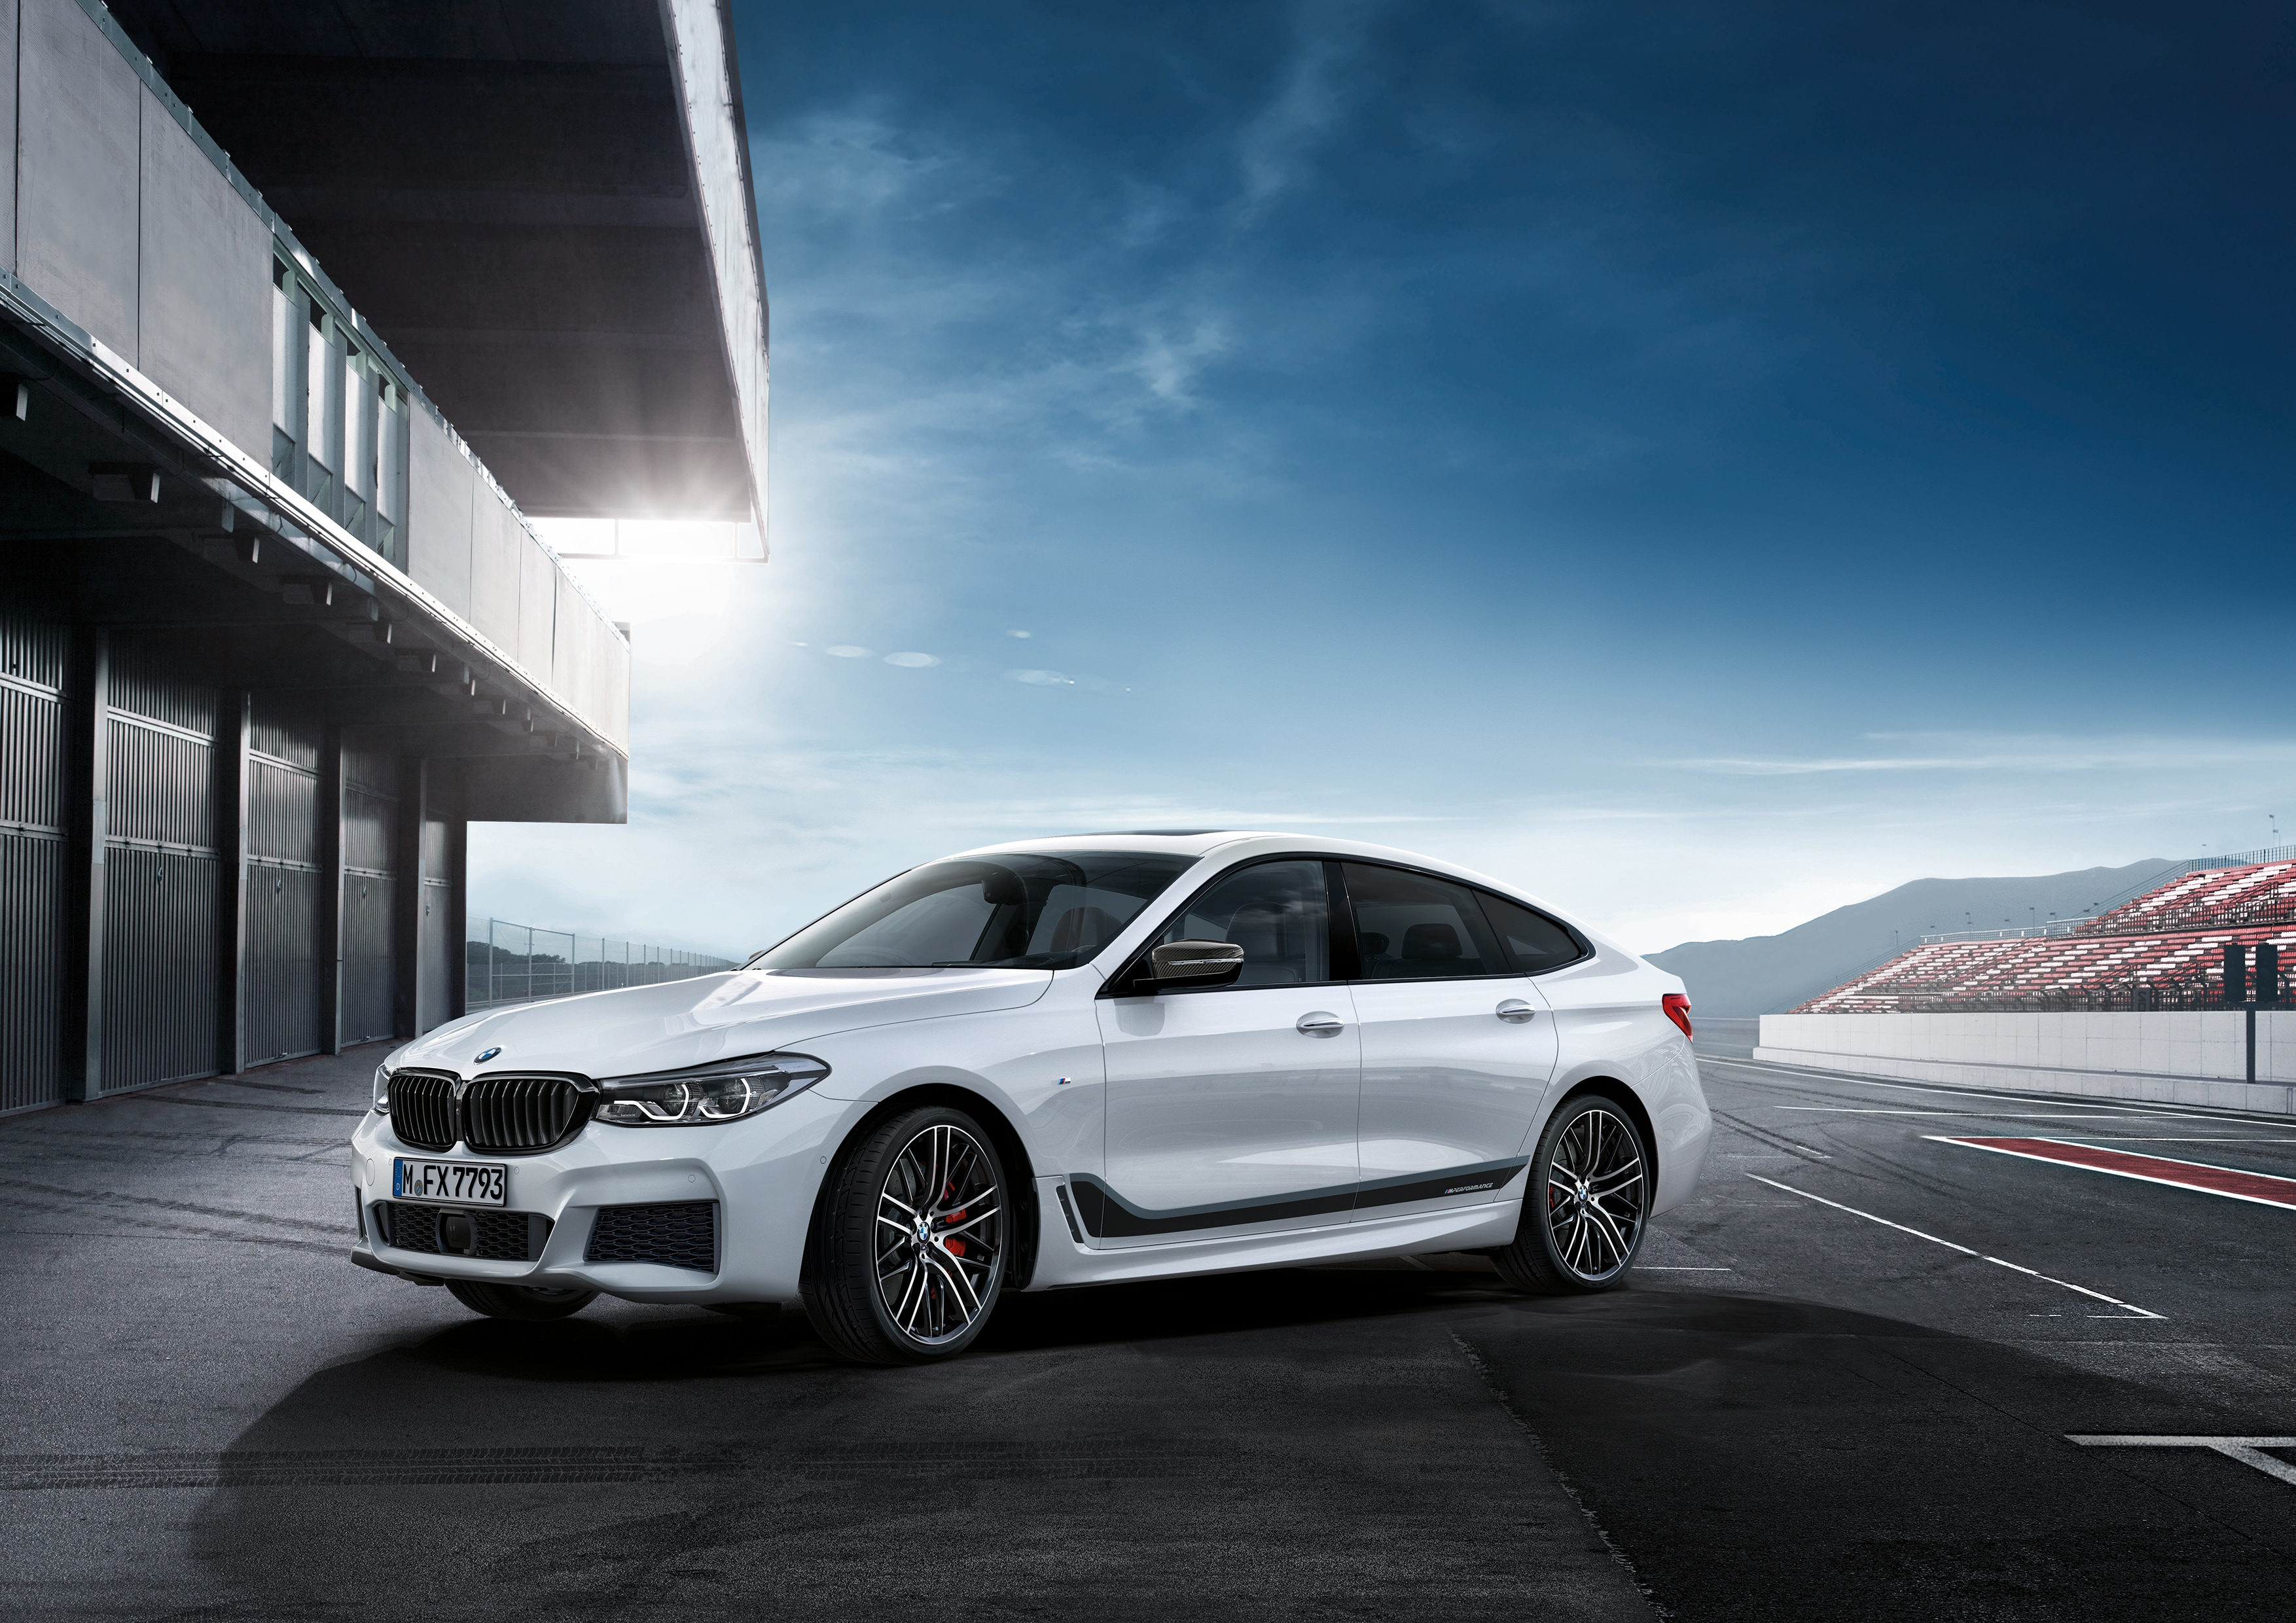 fr luxury dealers sale with bmw listings auto in suv well experience md years dubai new steer for full xdrive warranty